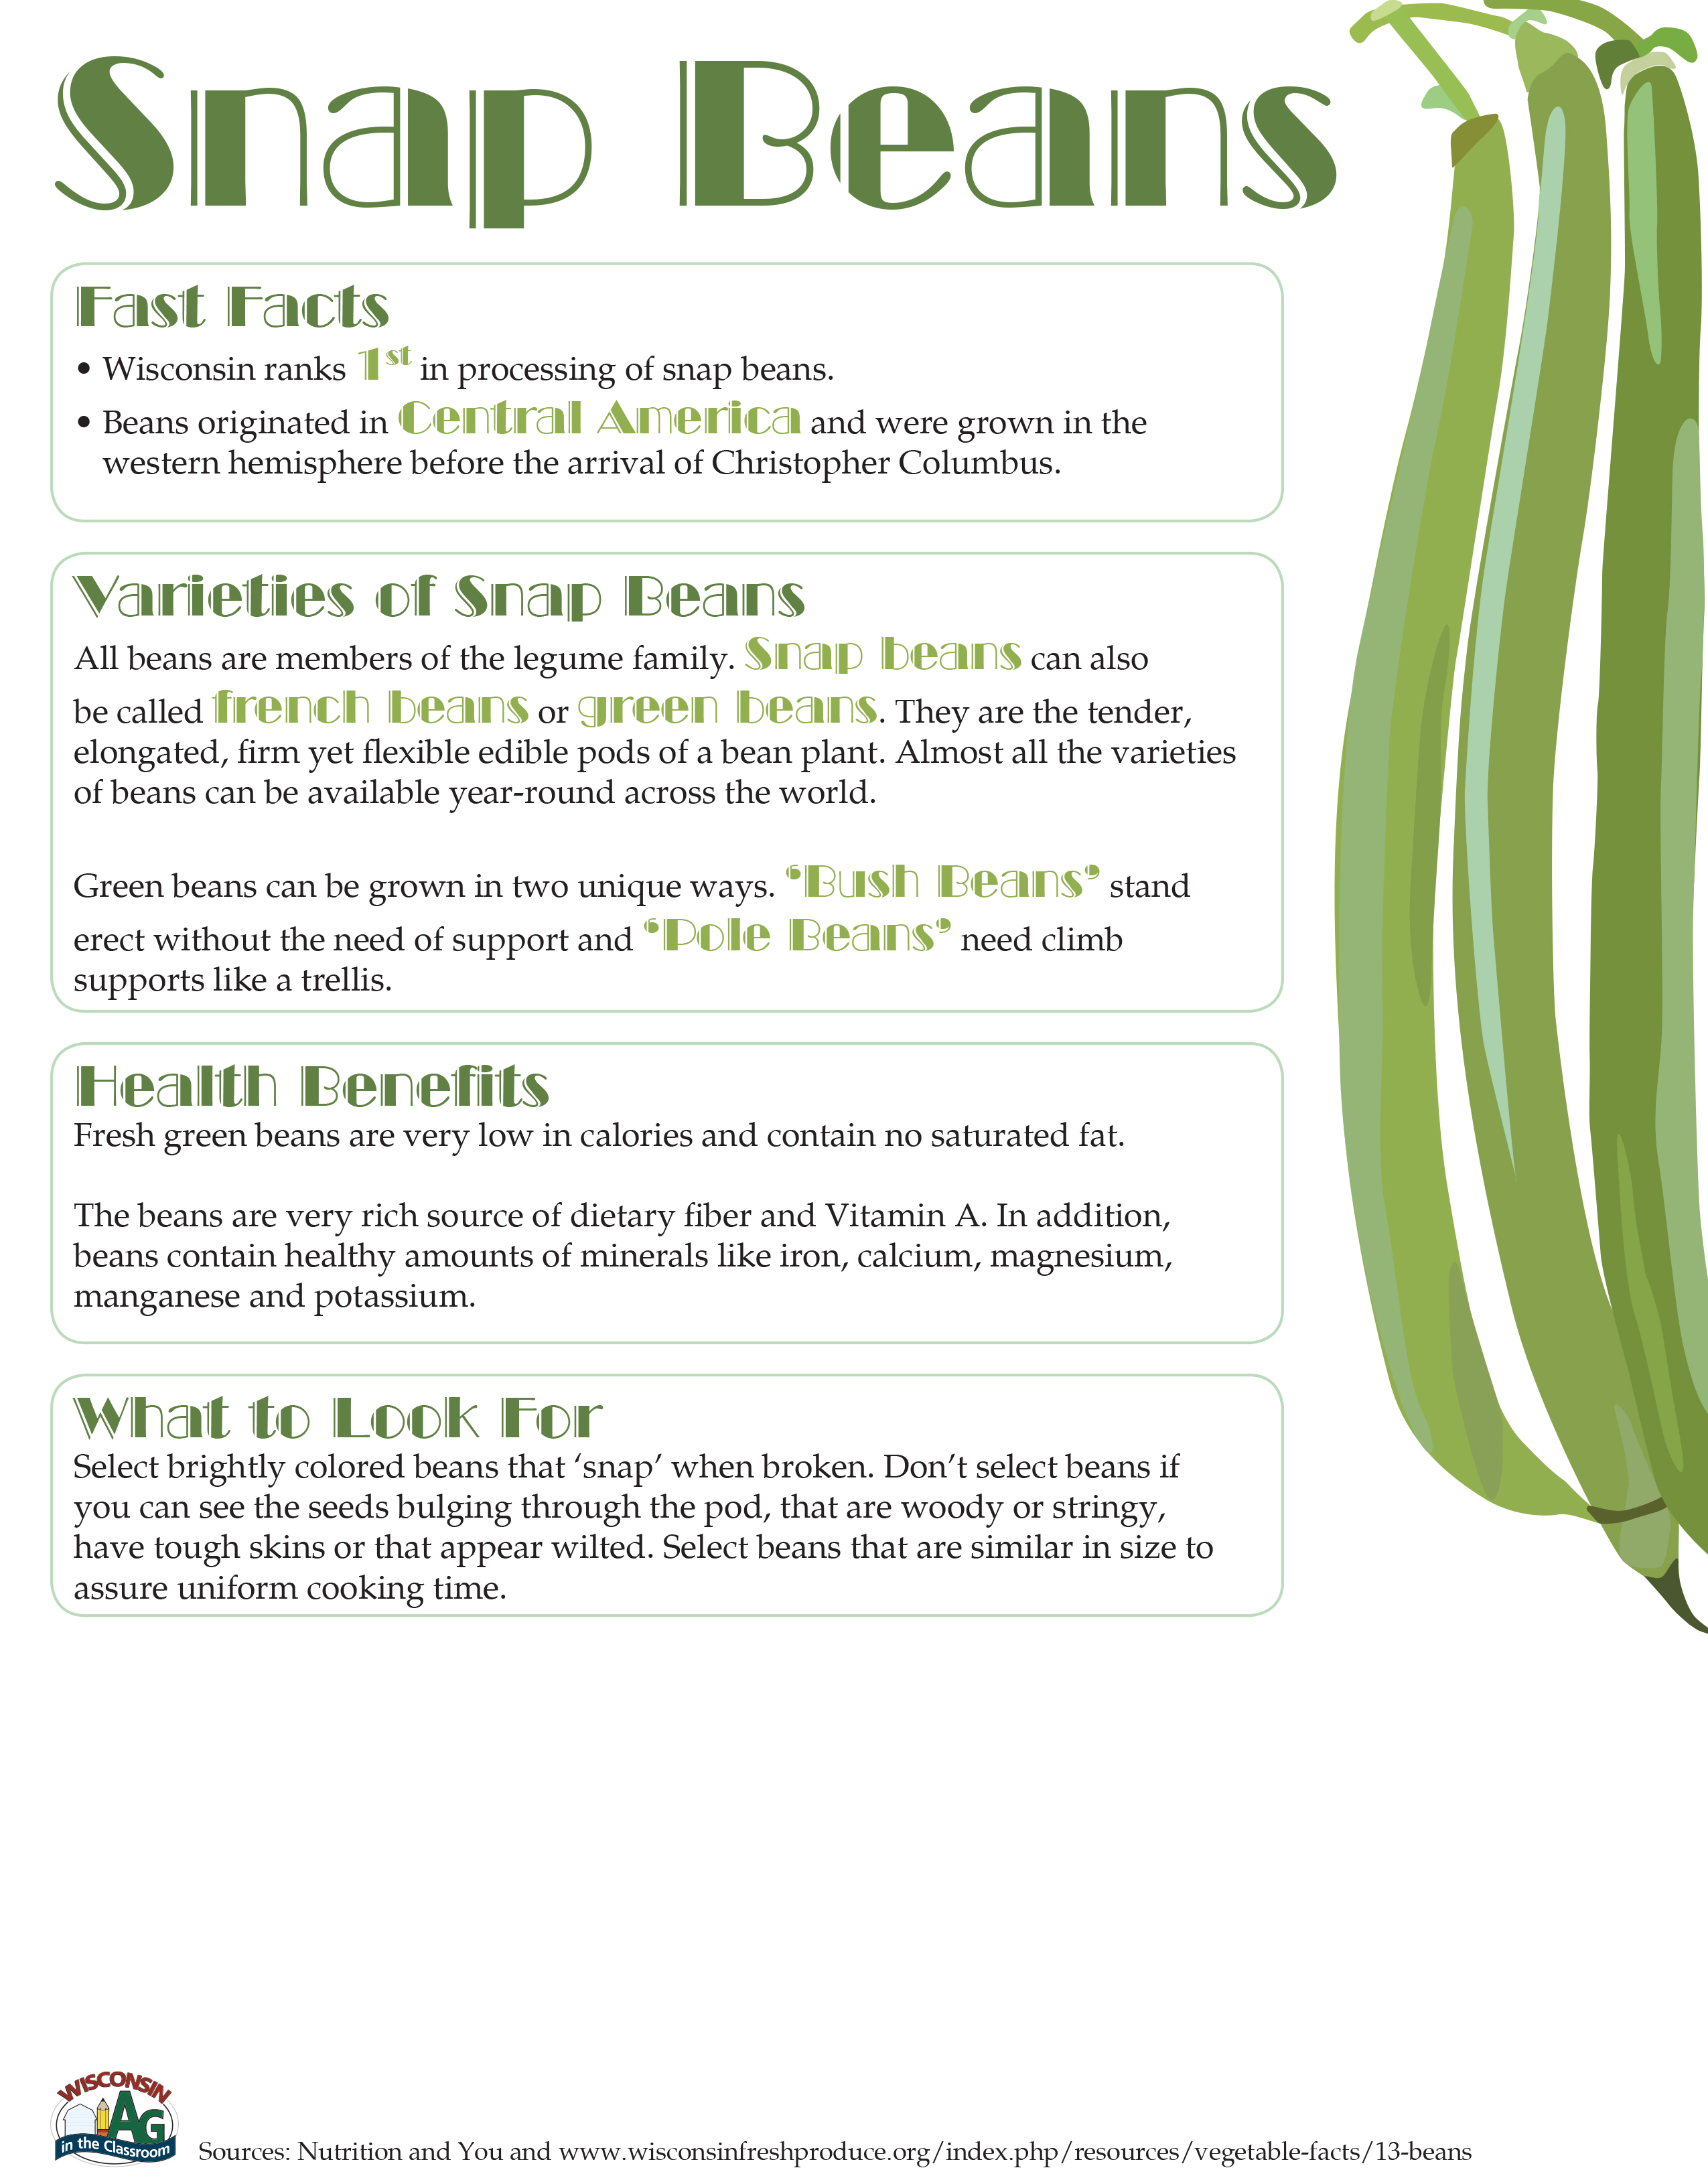 Snap Beans Fact Sheet